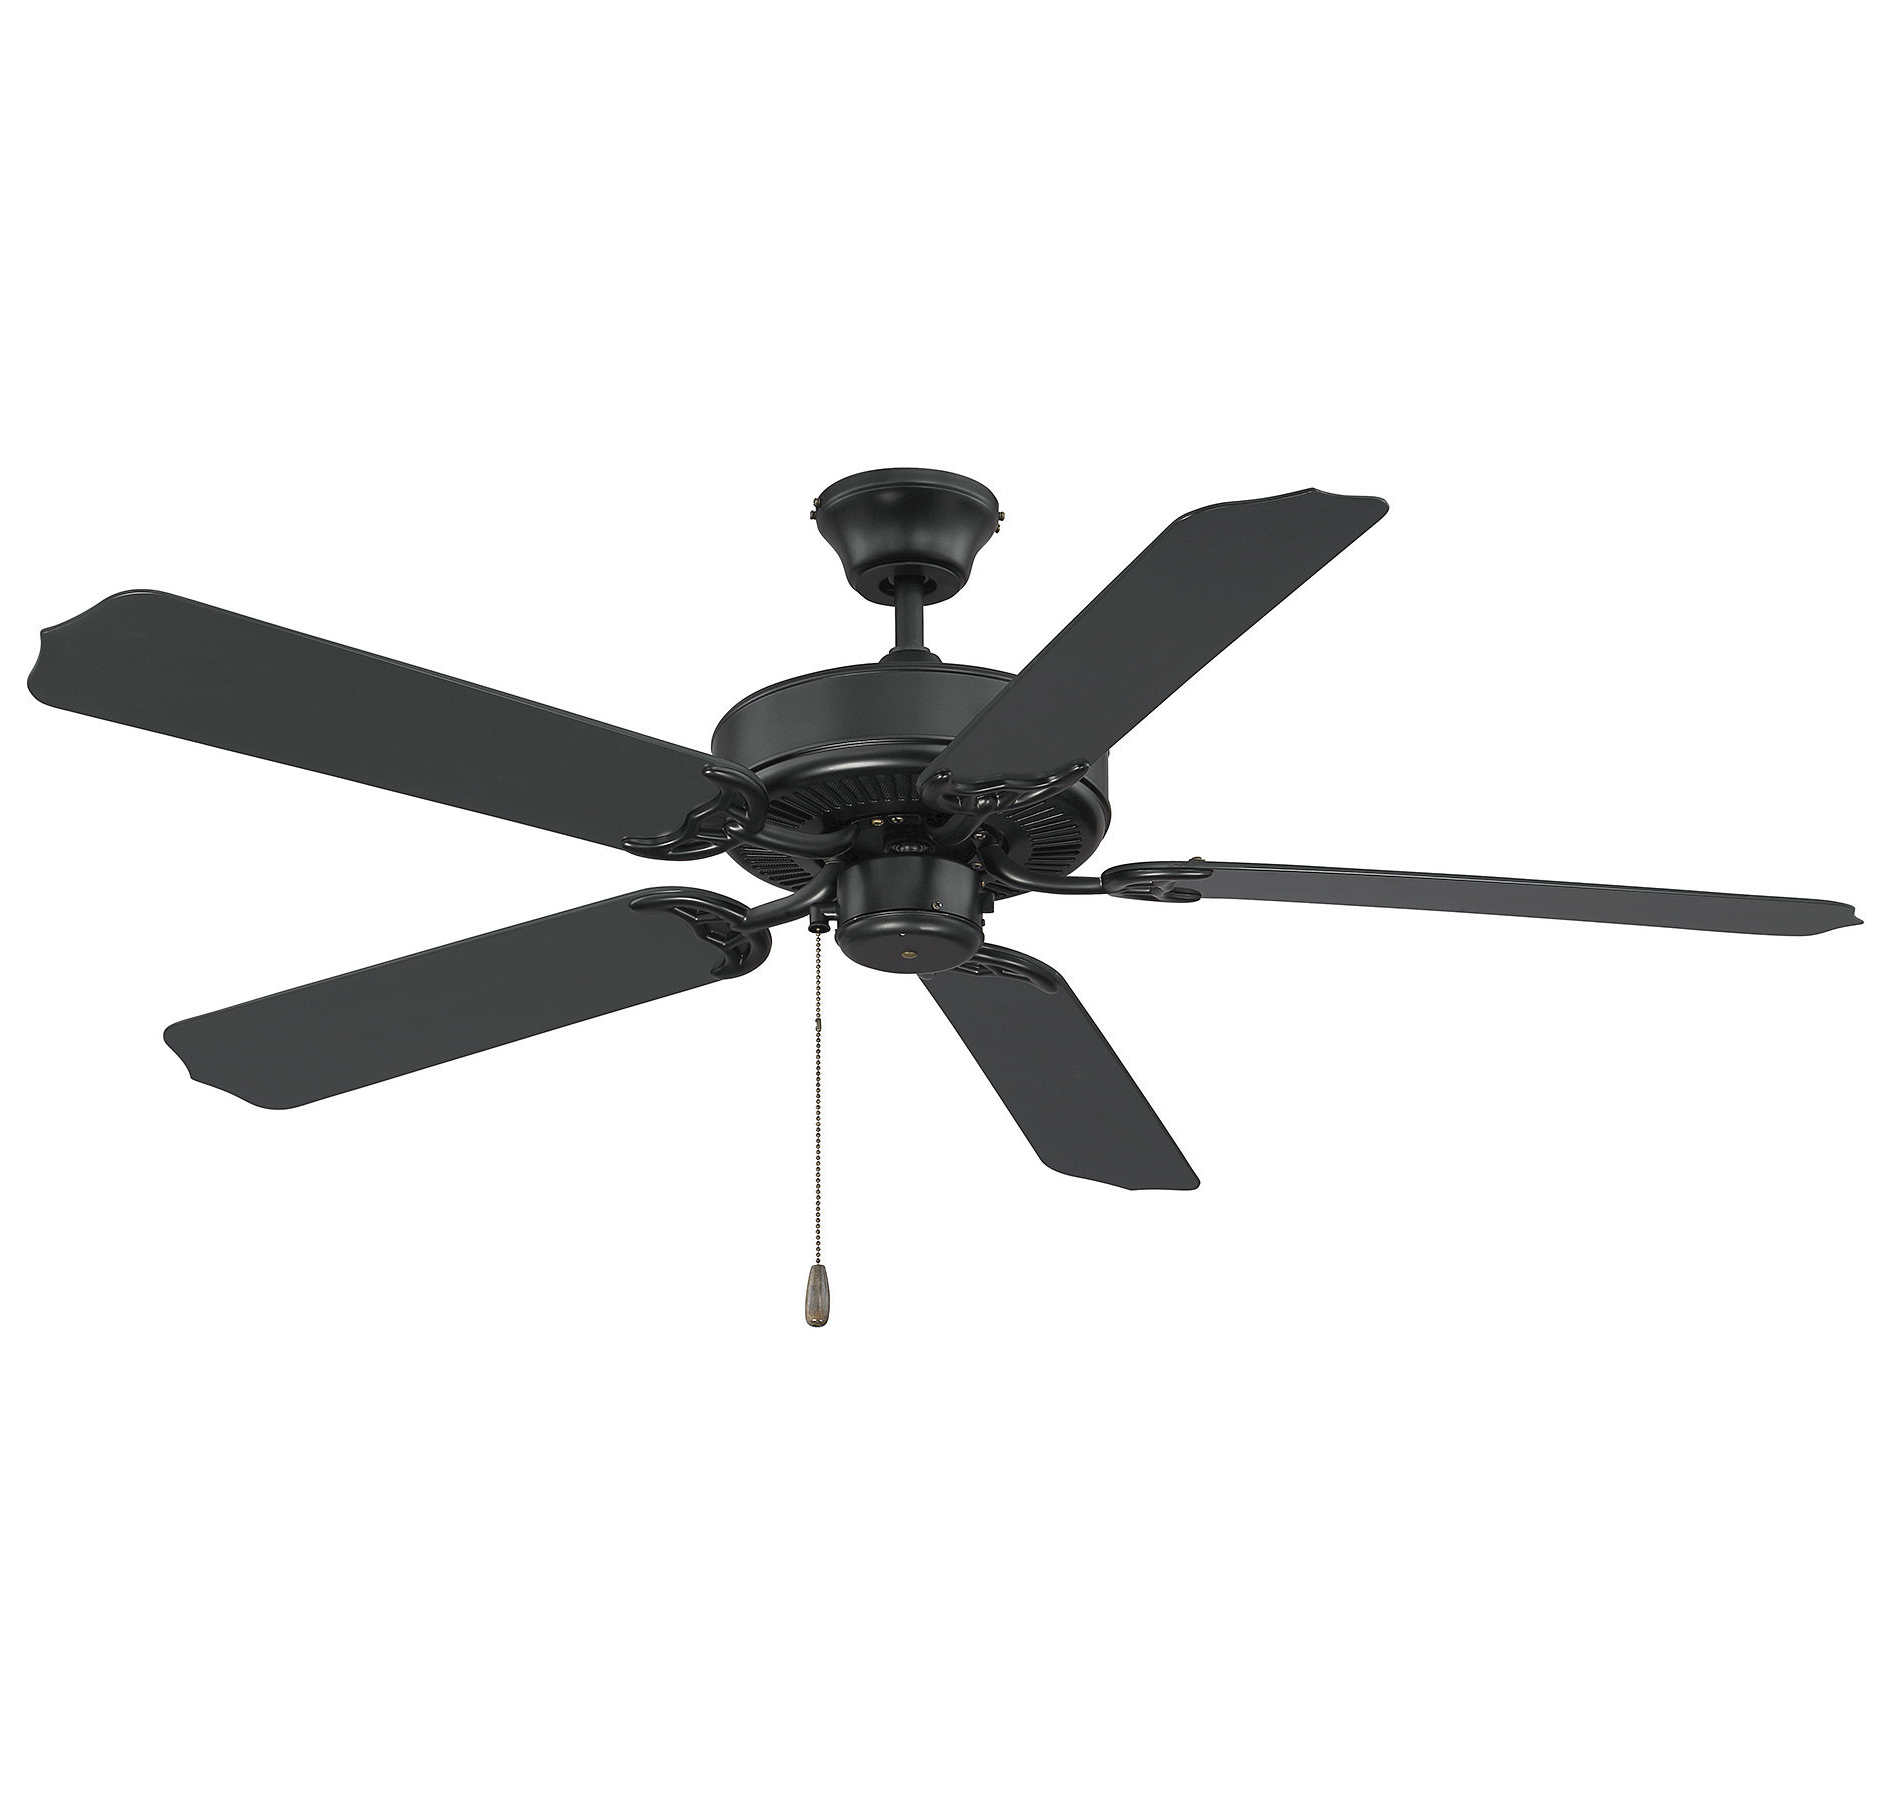 "2020 Blomquist 5 Blade Outdoor Ceiling Fans Pertaining To 52"" Blomquist 5 Blade Outdoor Ceiling Fan (View 2 of 20)"